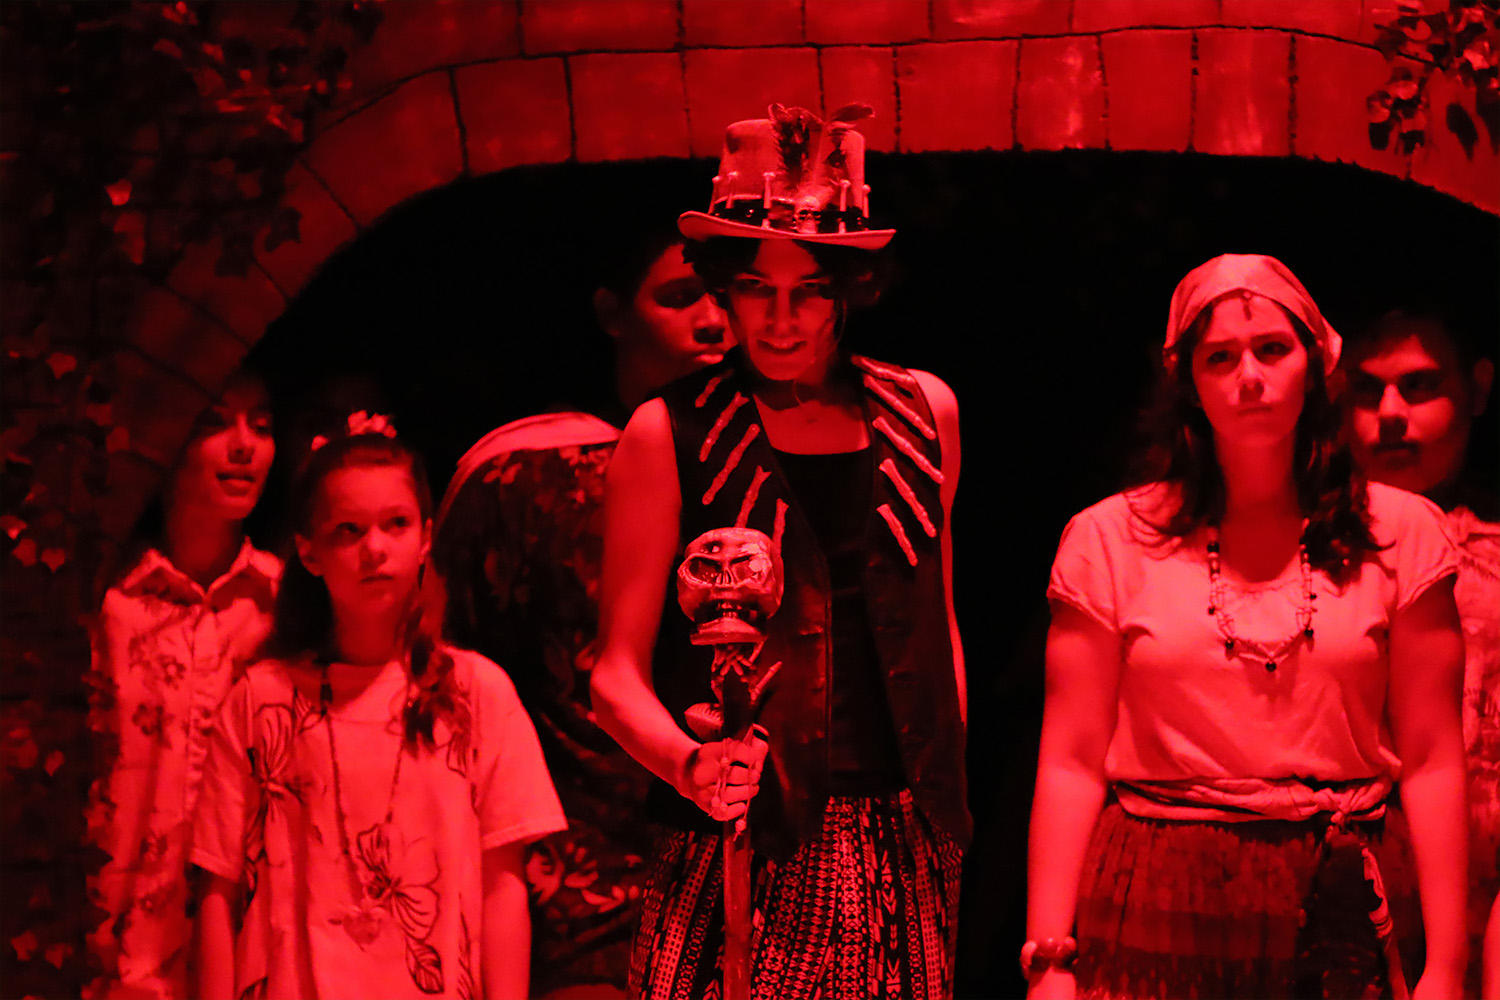 Senior Matt Hernandez plays the menacing role of Papa Ge, Demon of Death.